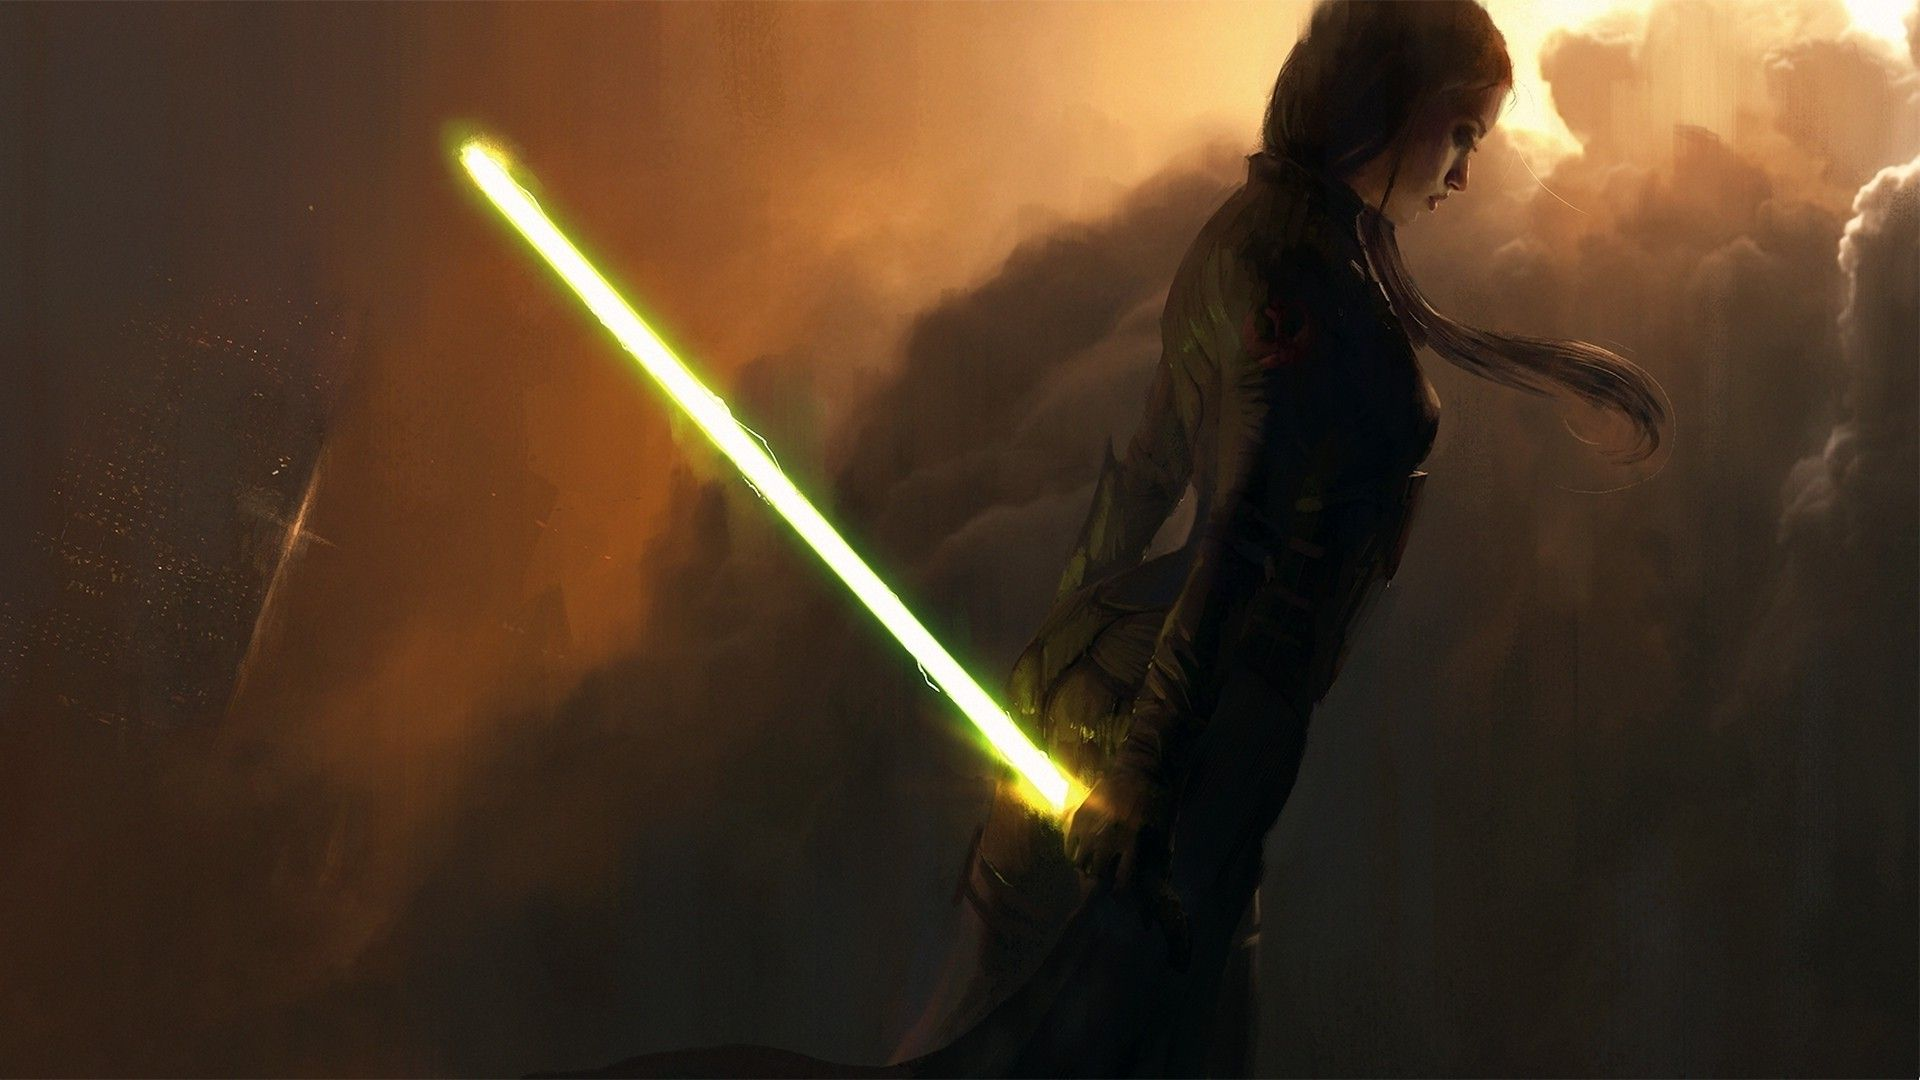 Best 56+ Jedi Wallpapers on HipWallpapers